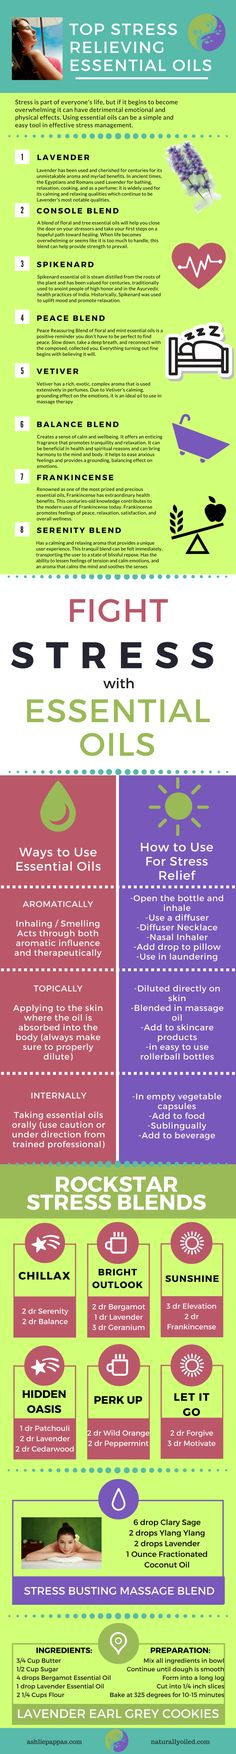 Essential Oils can be a super easy and powerful tool in stress management!  Life is way too short to spend it stressed out!